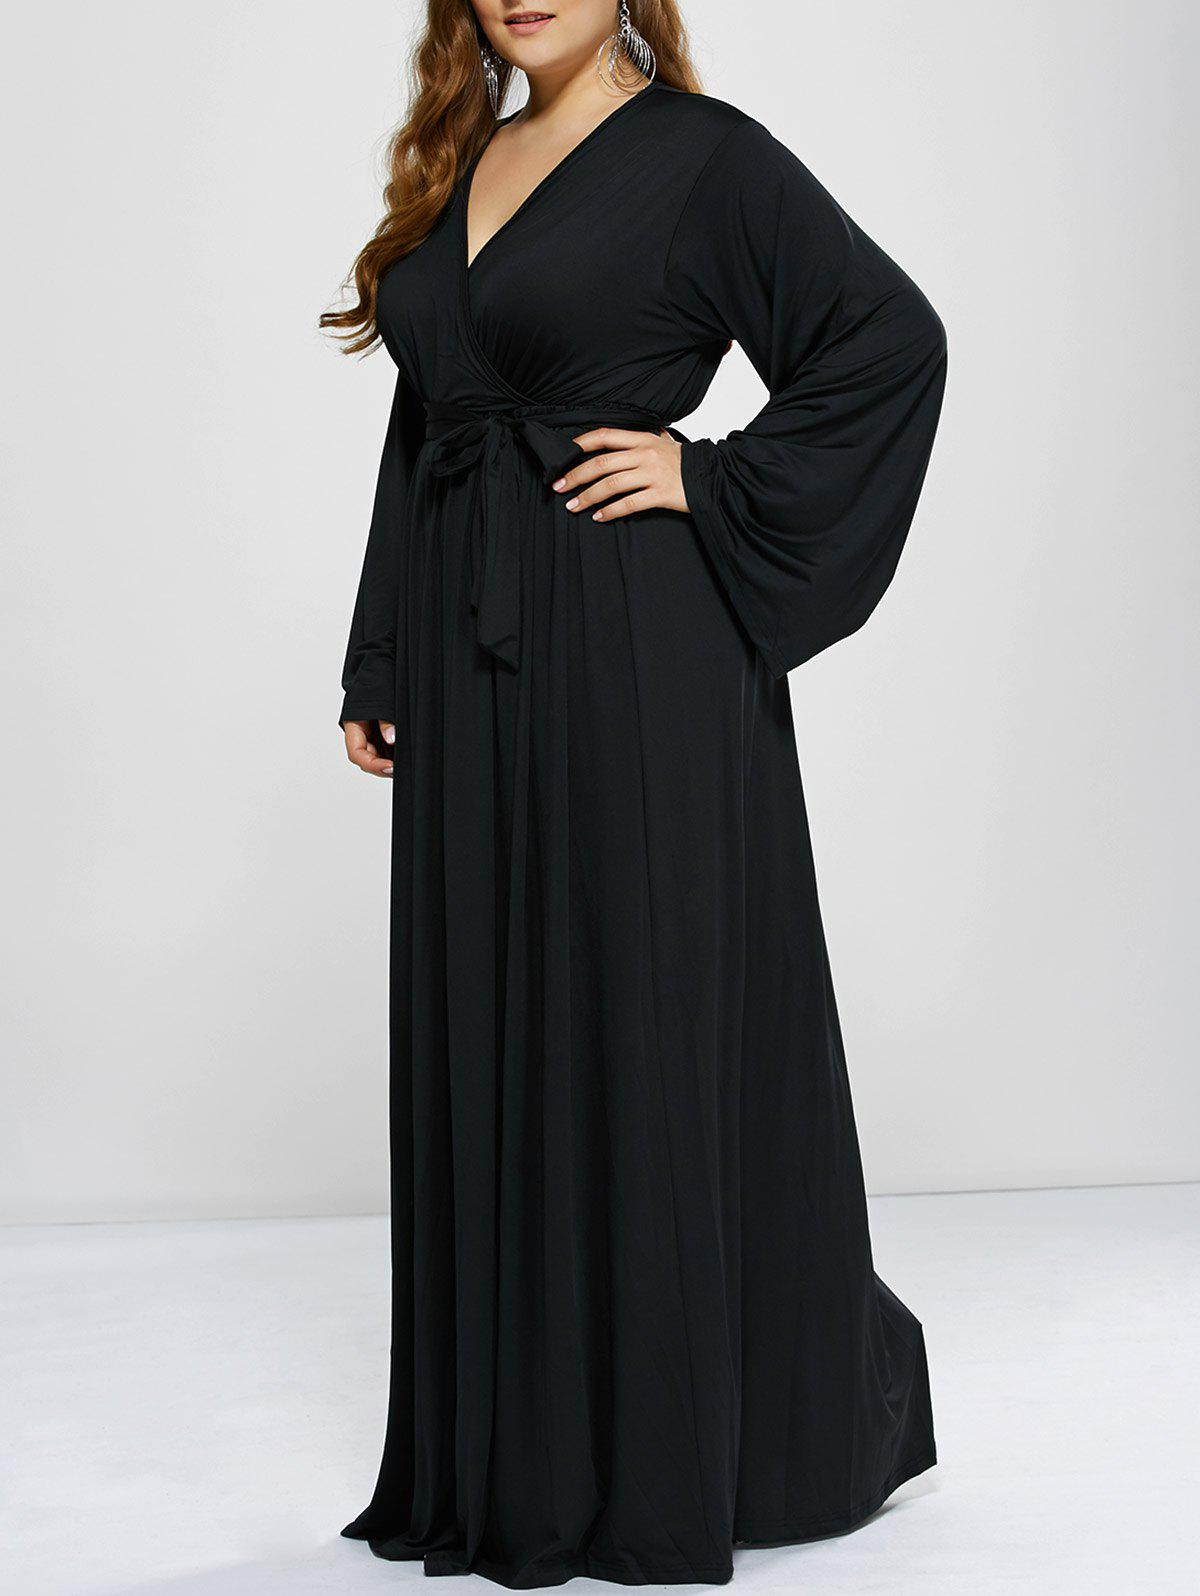 2018 plus size long sleeve modest maxi formal dress black